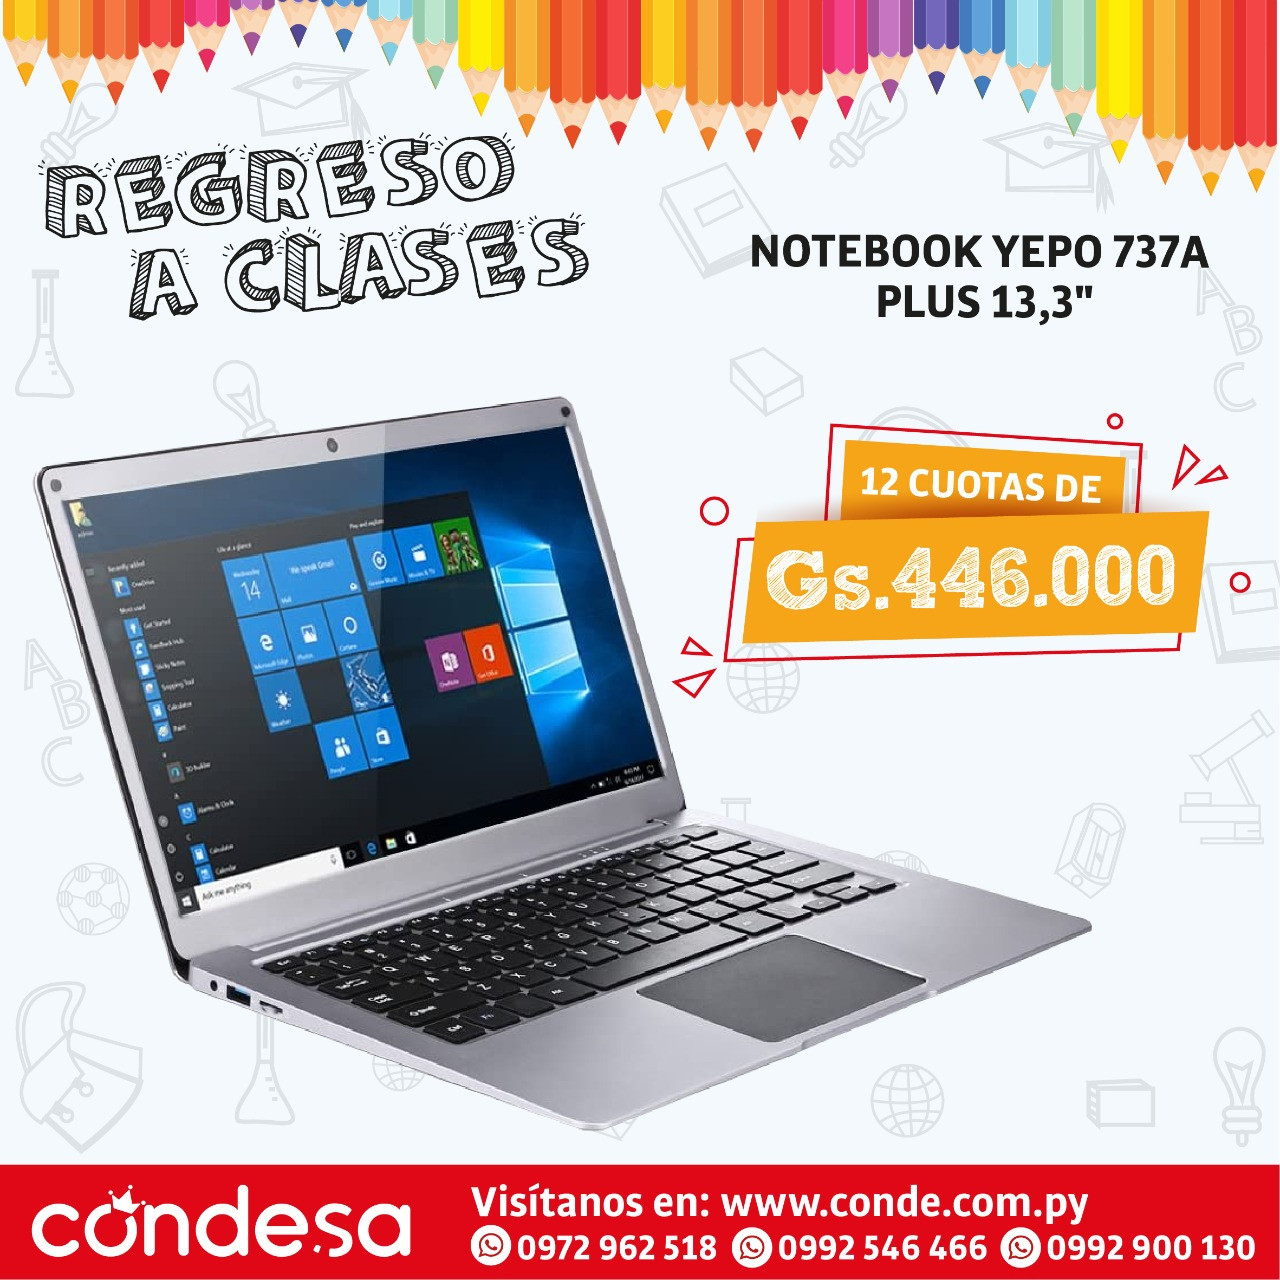 NOTEBOOK YEPO 737A PLUS 13,3""